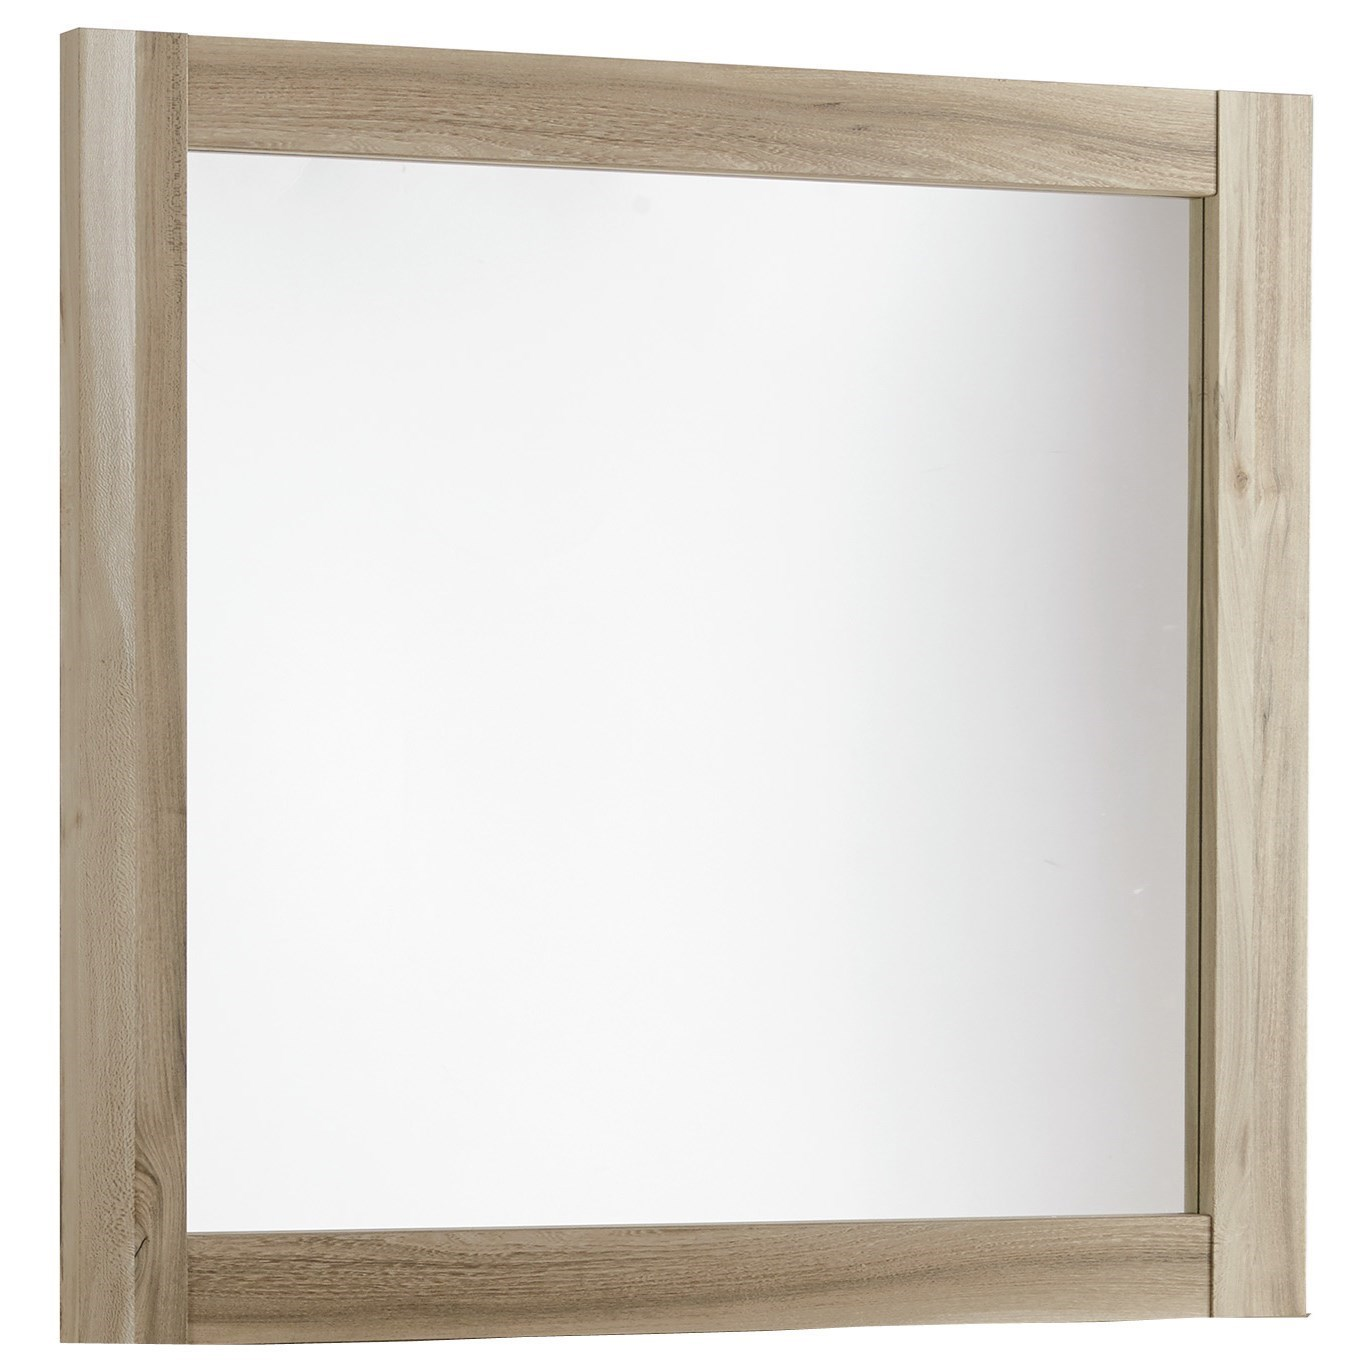 Kianni Mirror by Benchcraft at Fisher Home Furnishings